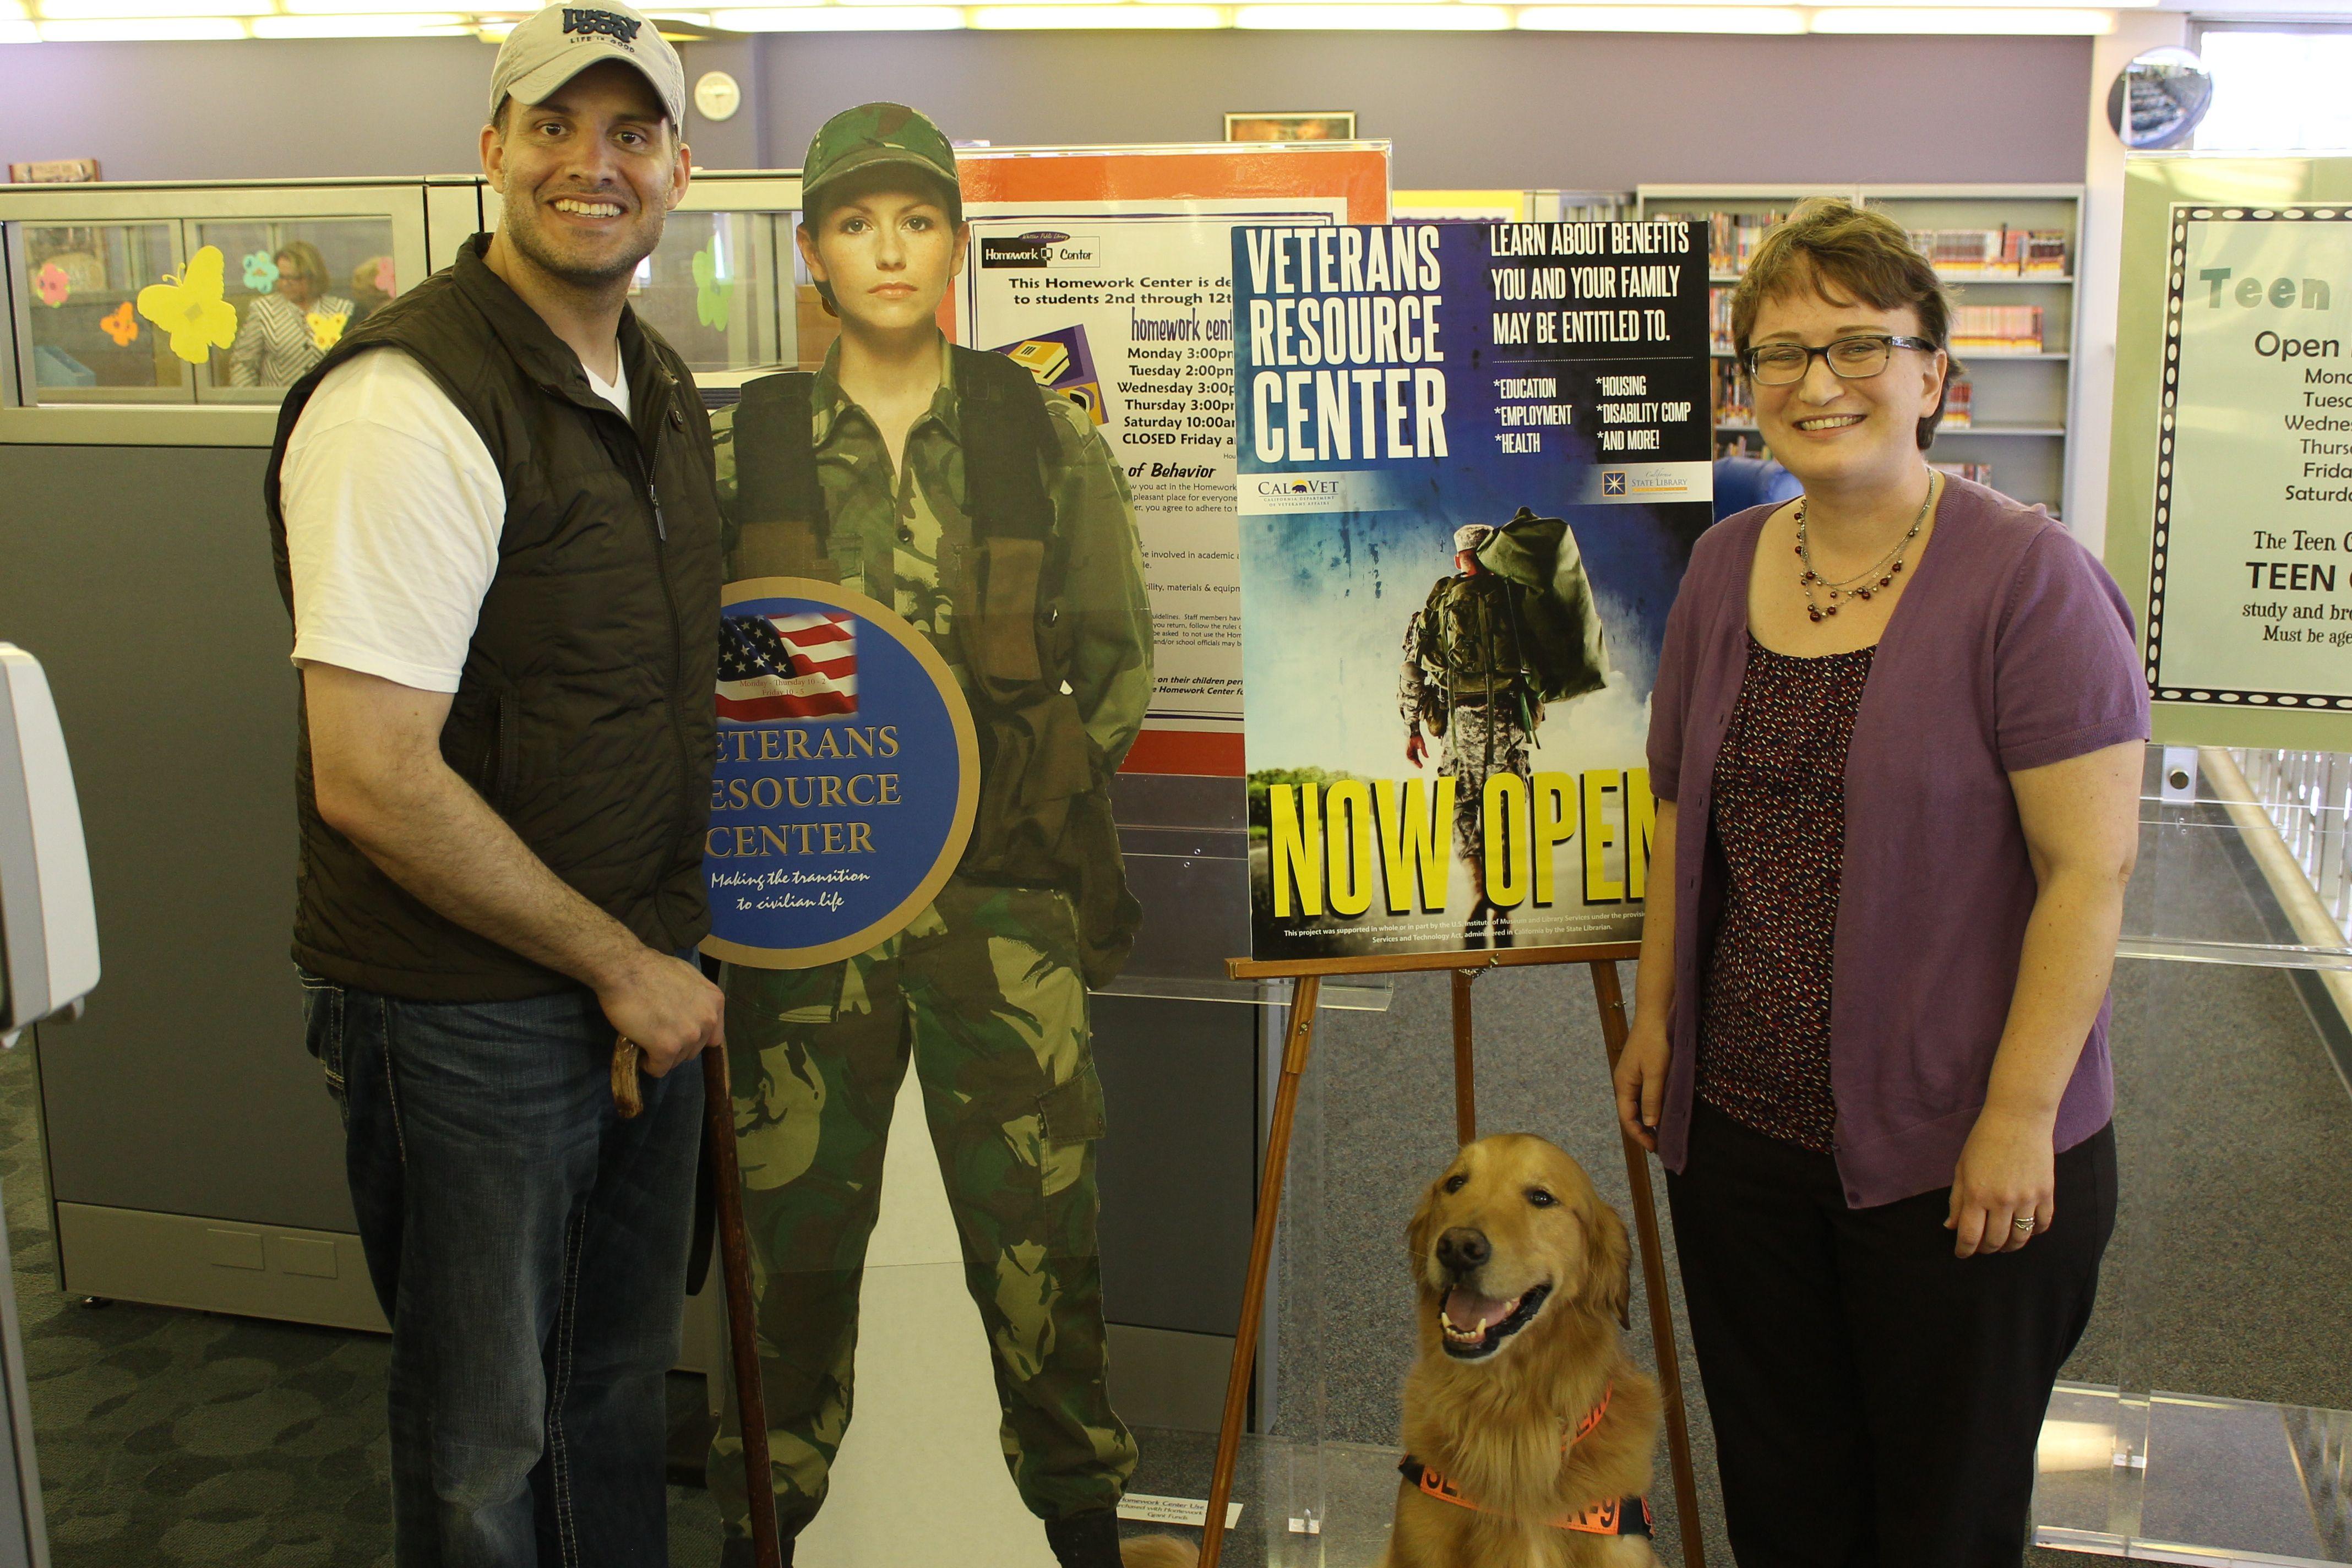 Through the Veterans Connect the Library project